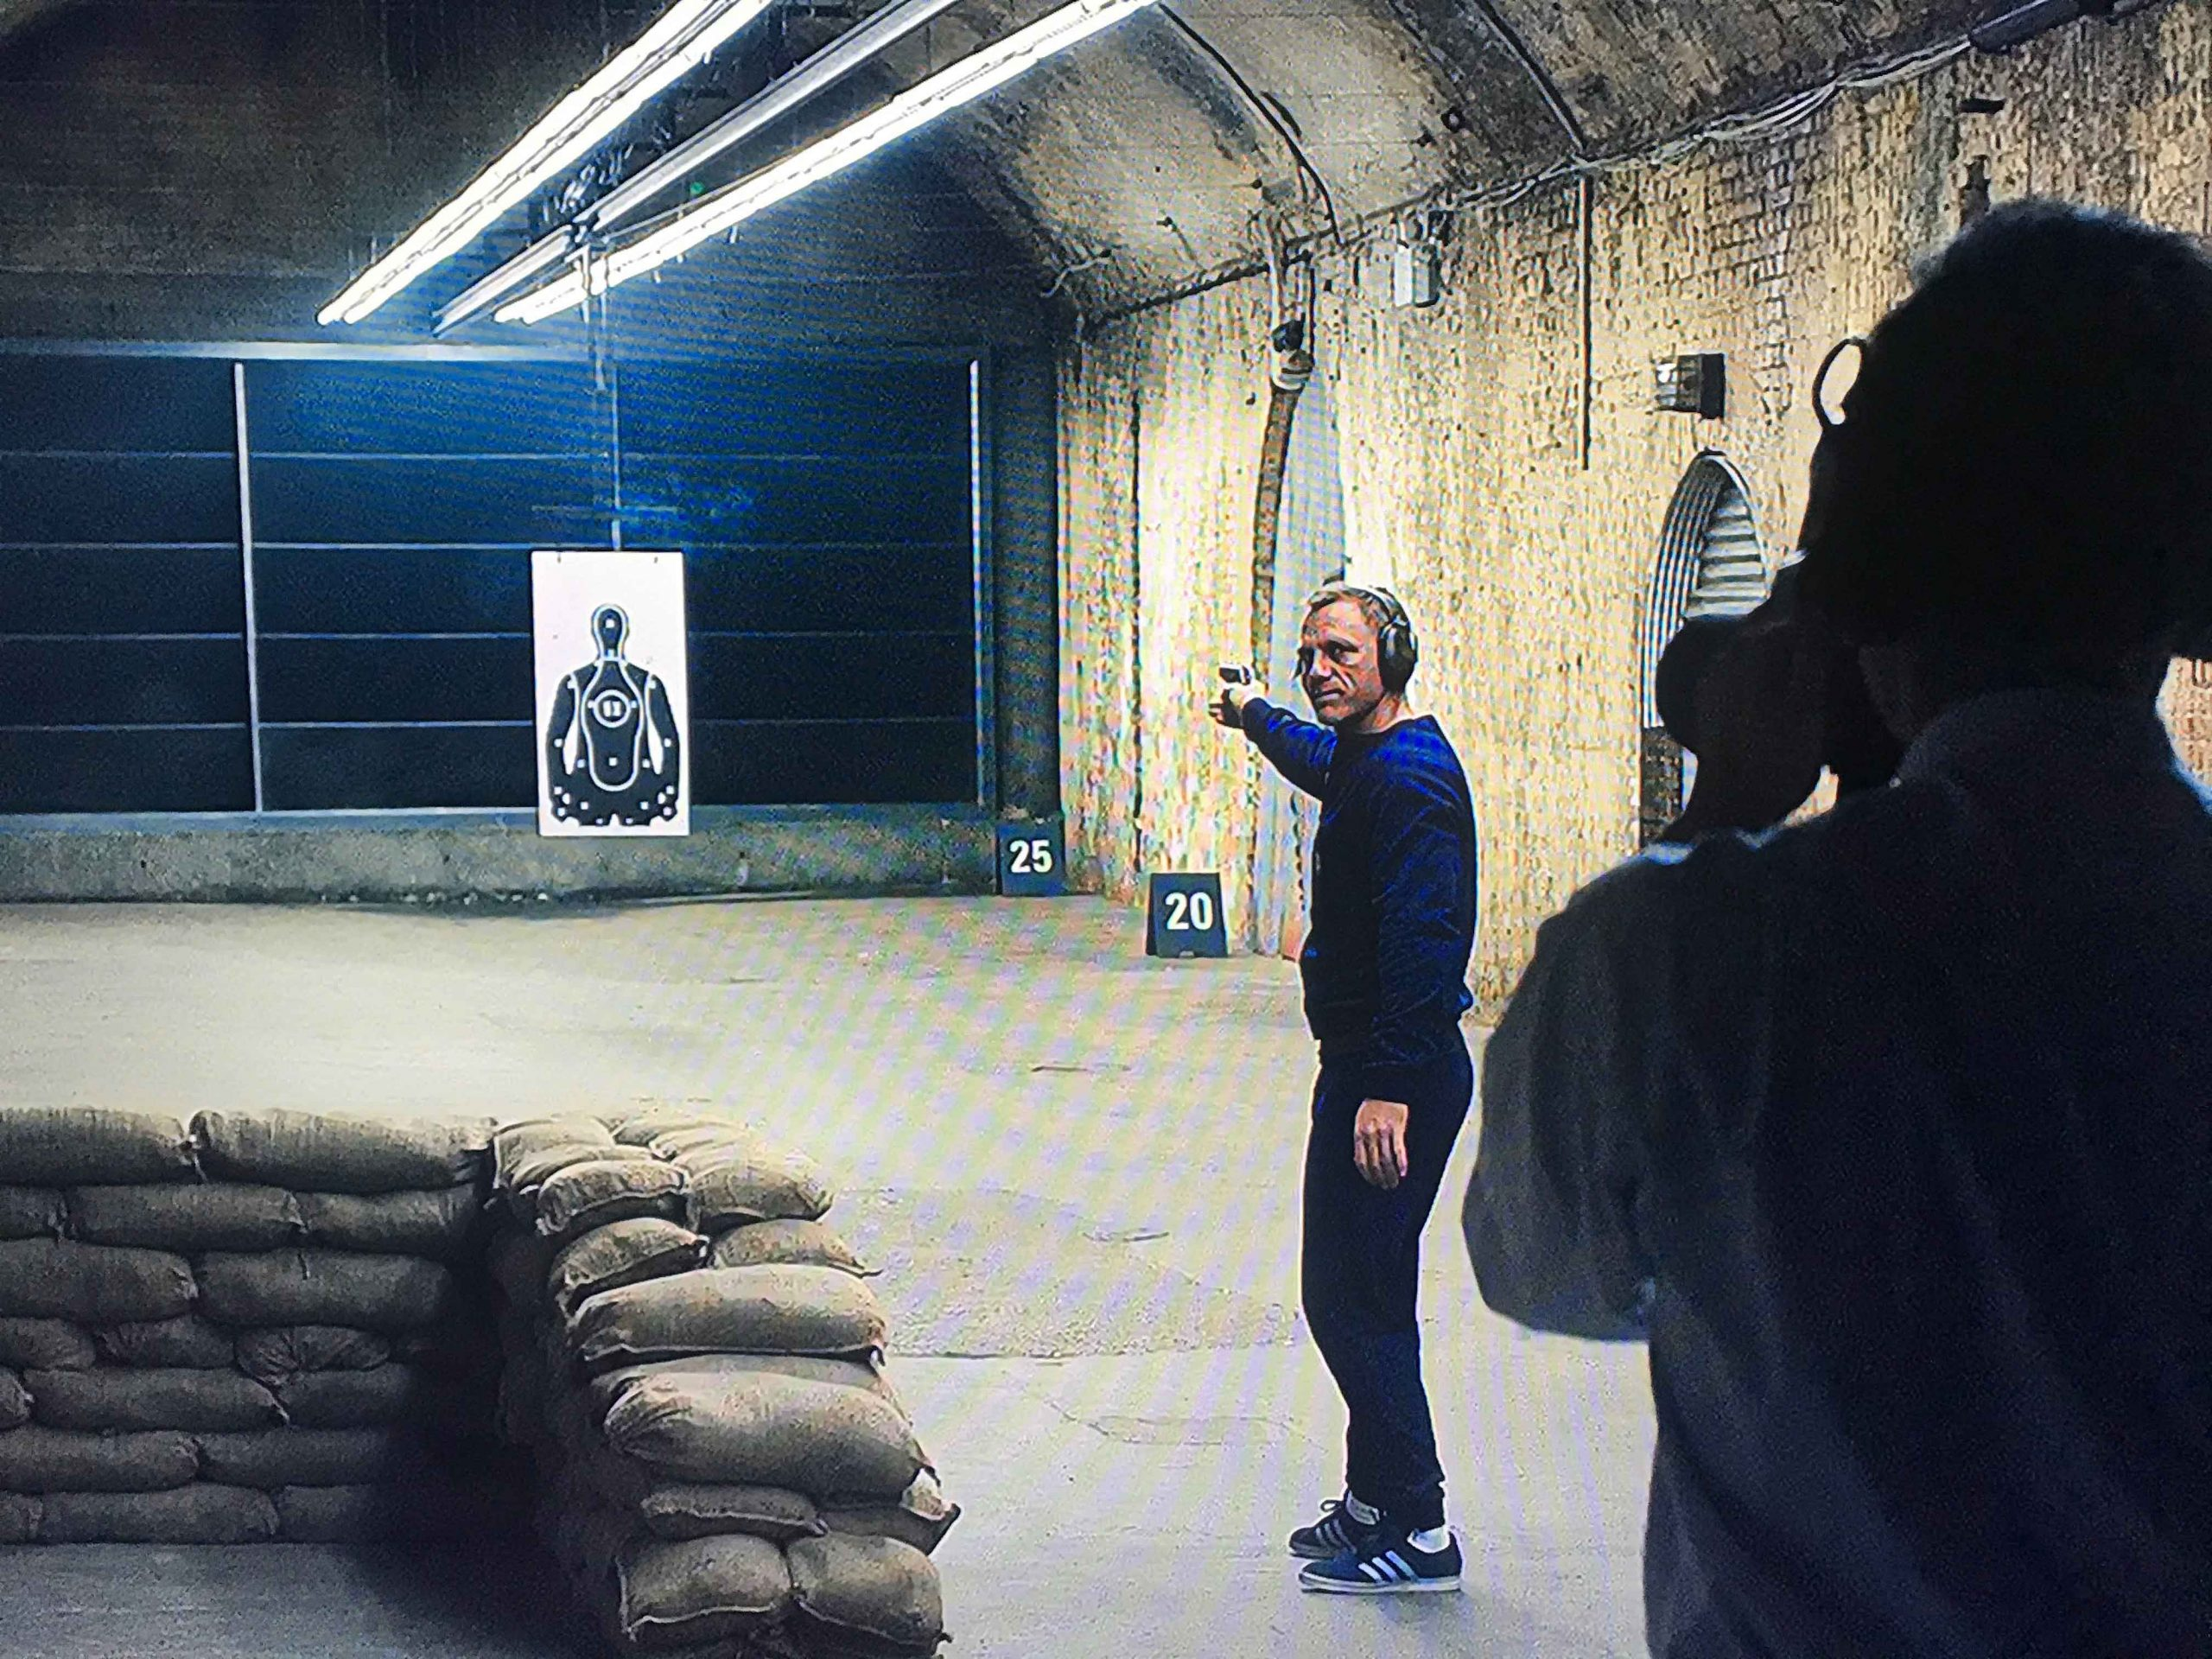 Daniel Craig in Skyfall doing target practice wearing Adidas trainers